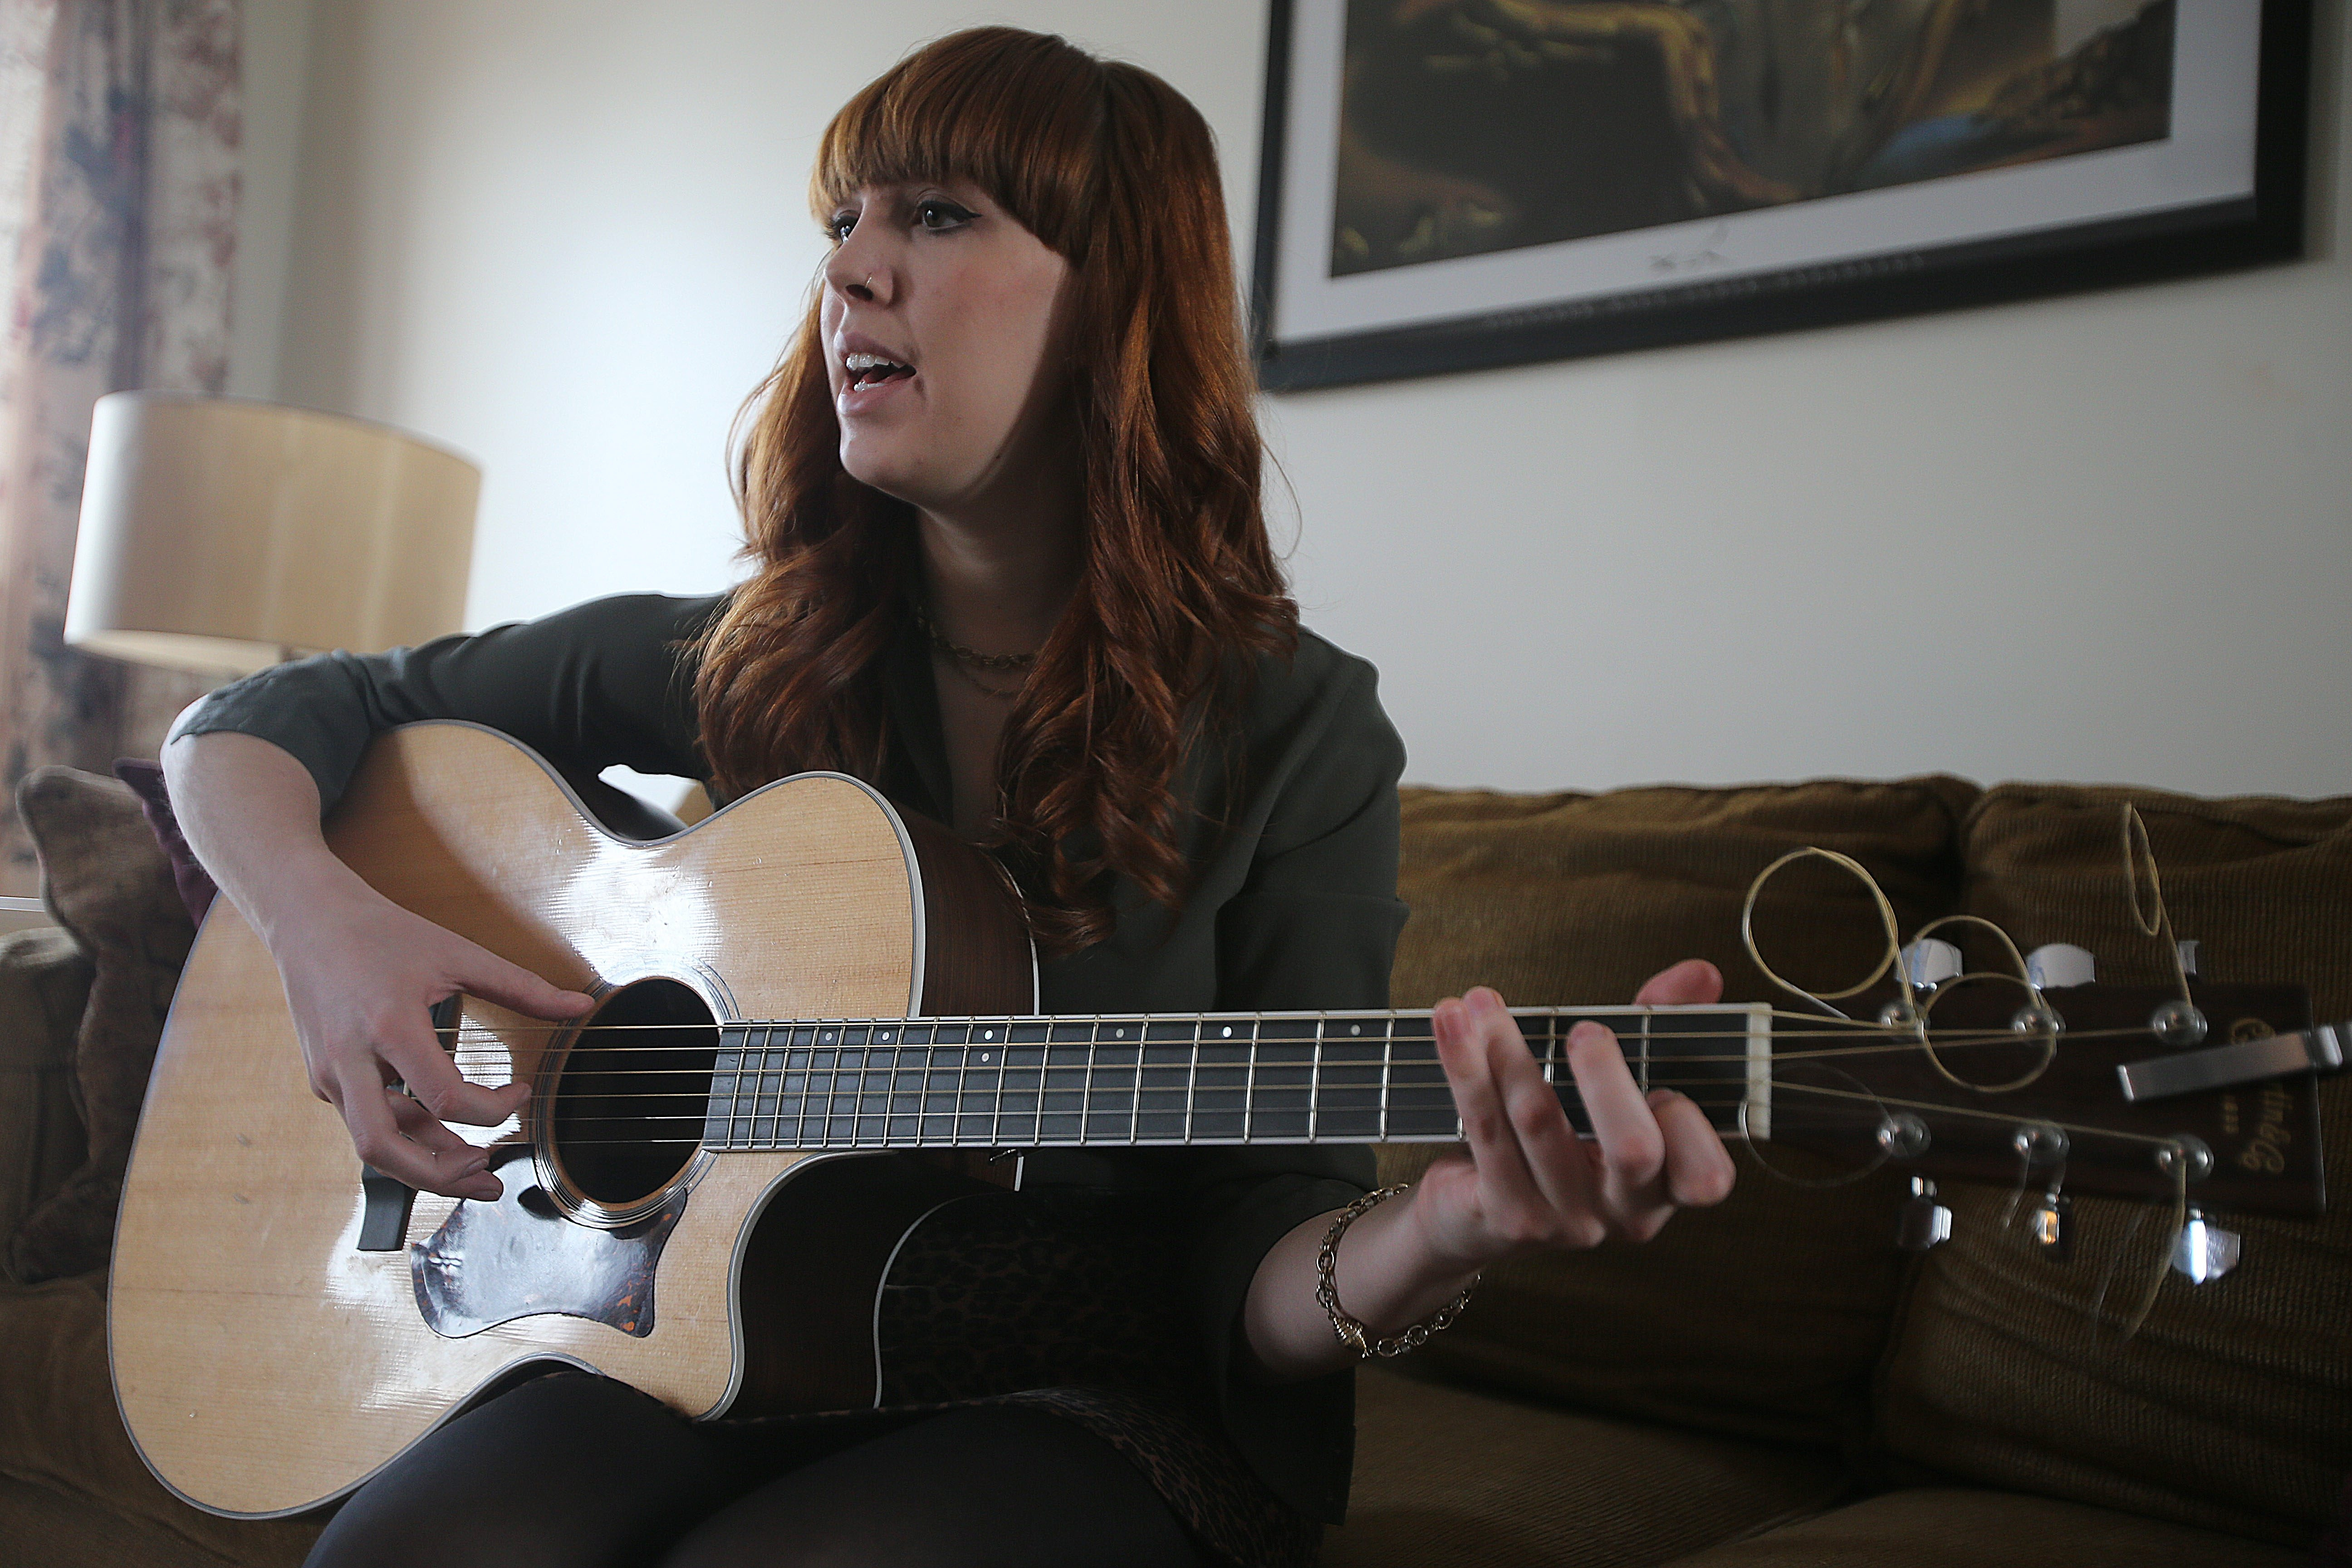 Savannah King, 20, plays guitar and sings one of her original songs at her home in Wilson earlier this month. The Fredonia State College junior is working on her third album and preparing to tour.